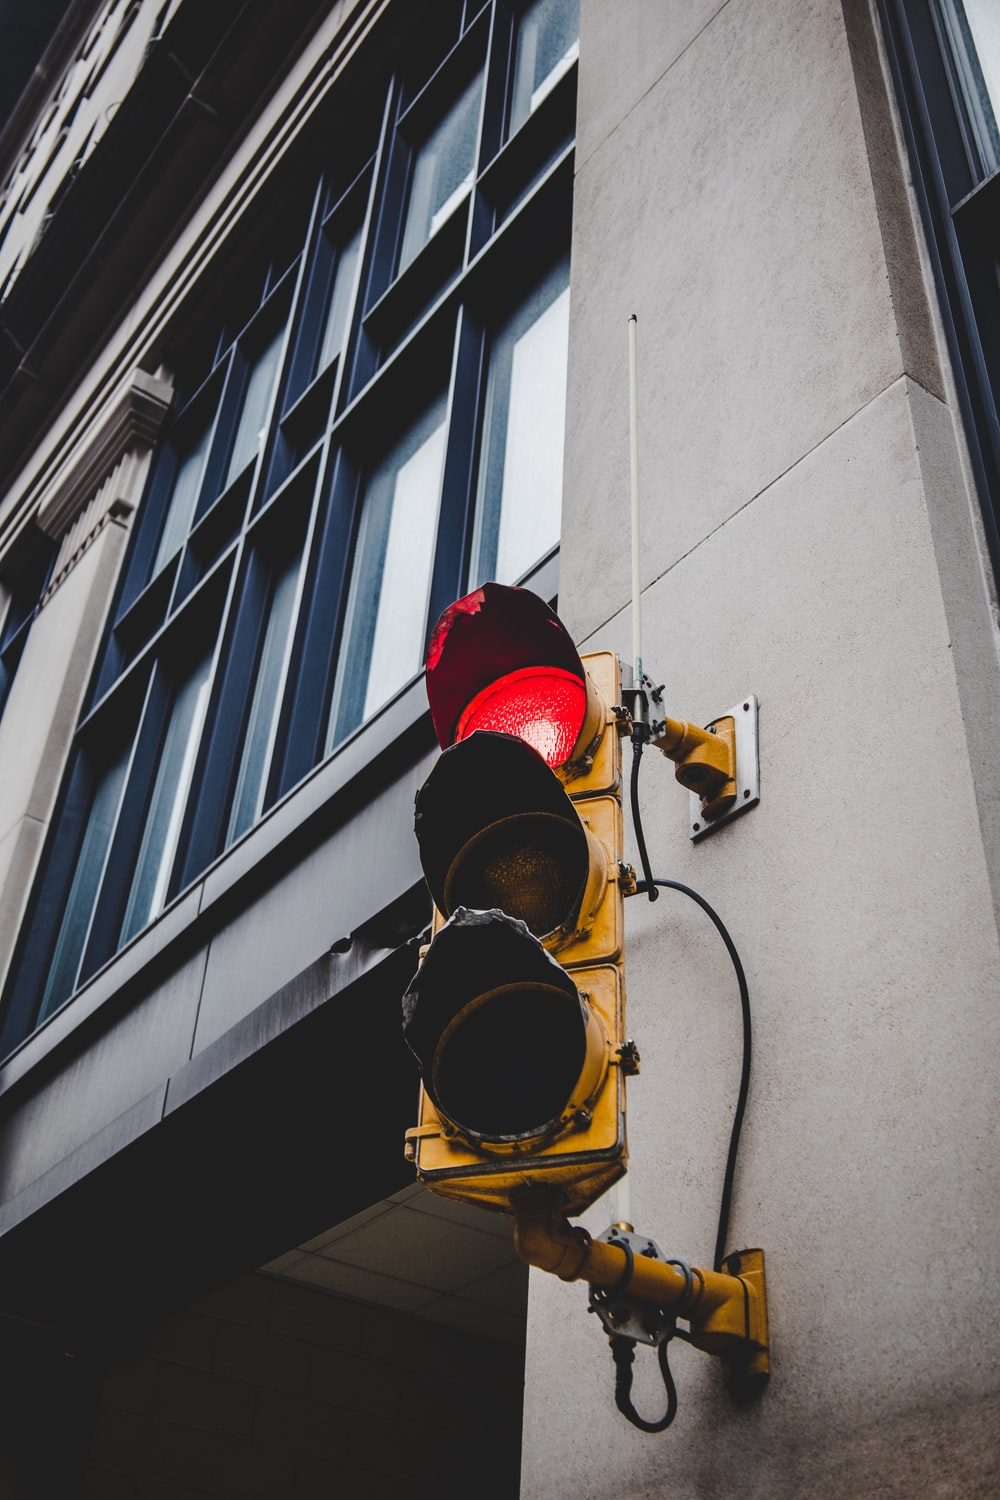 red and black traffic light